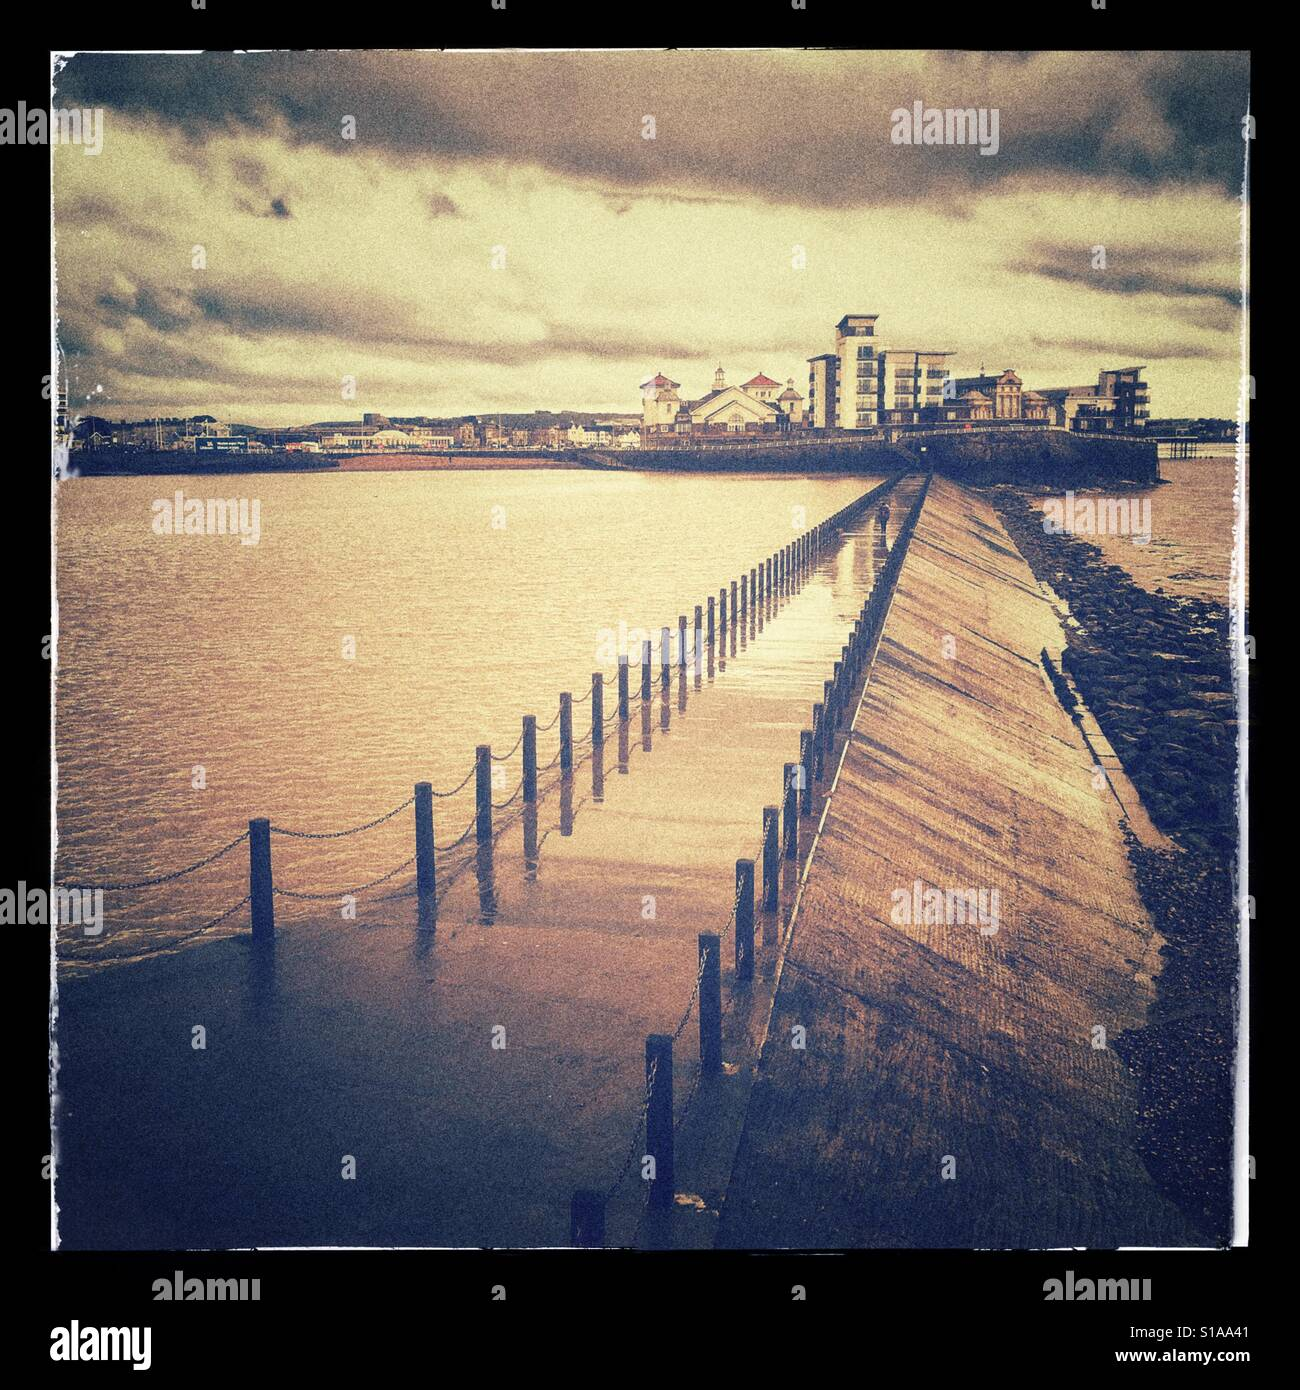 Marine Lake and its walkway in Weston super Mare, Somerset, England - Stock Image